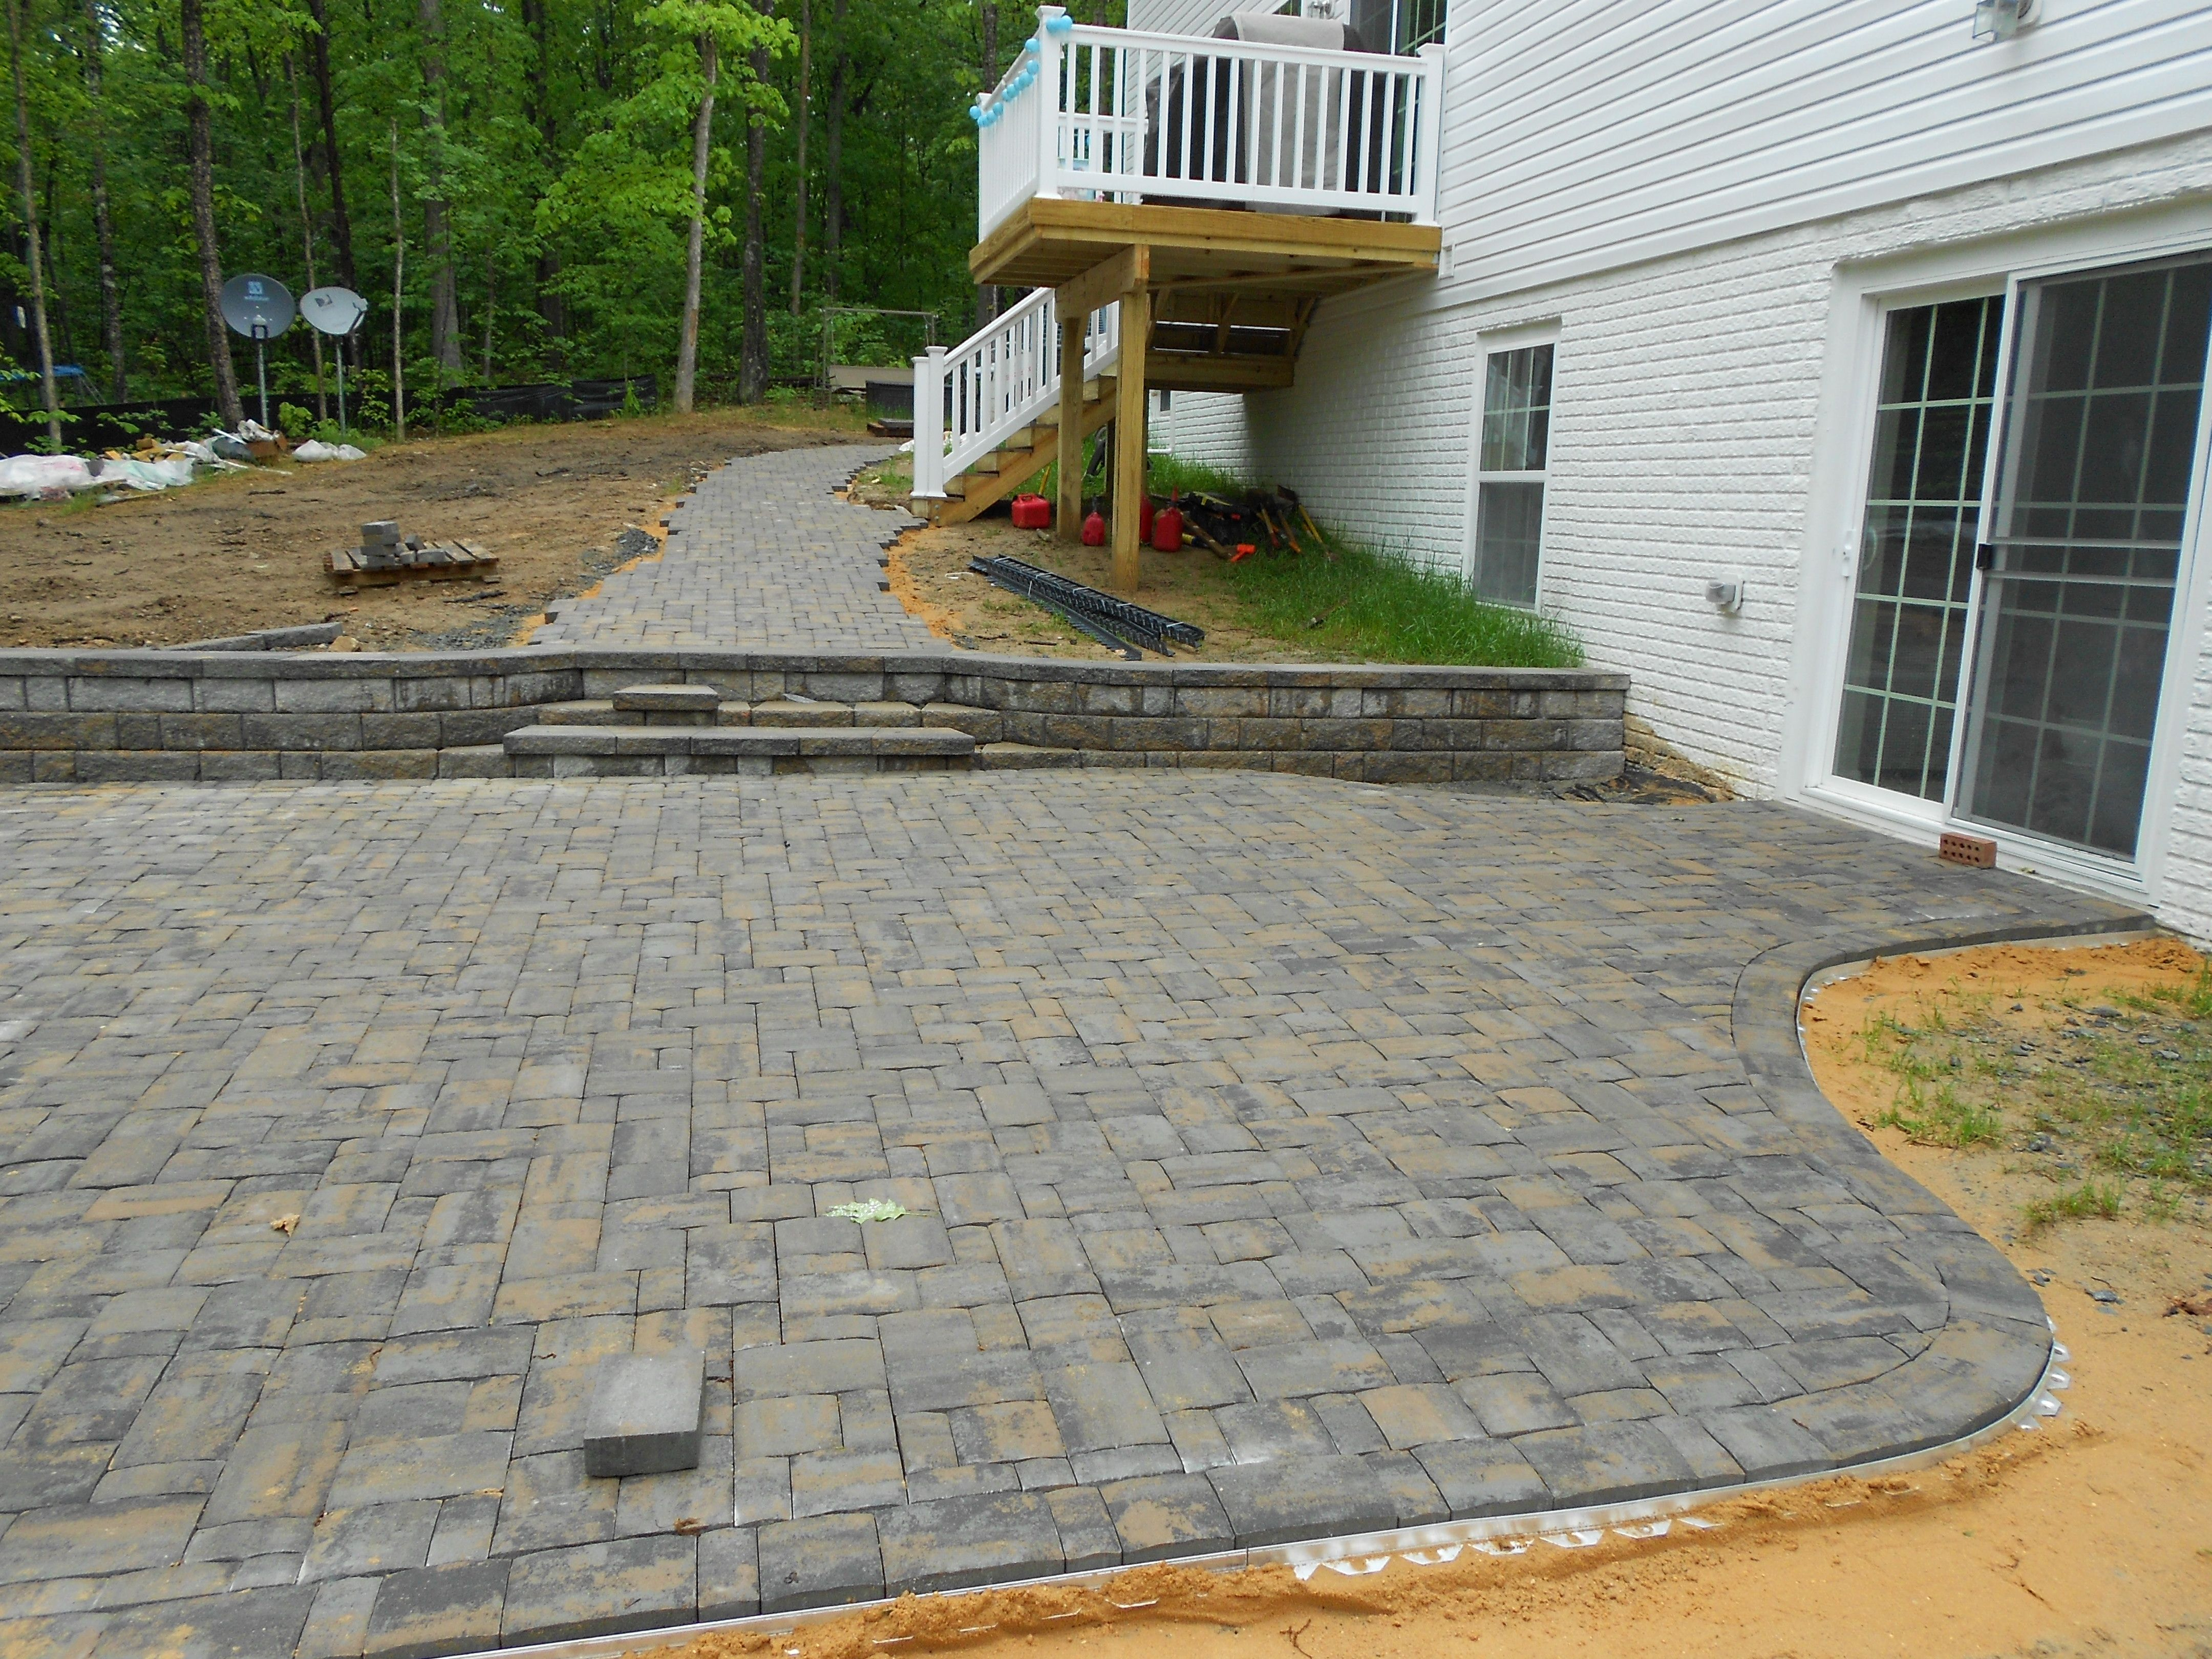 the fascinating clay paver patio design ideas wallpapers design